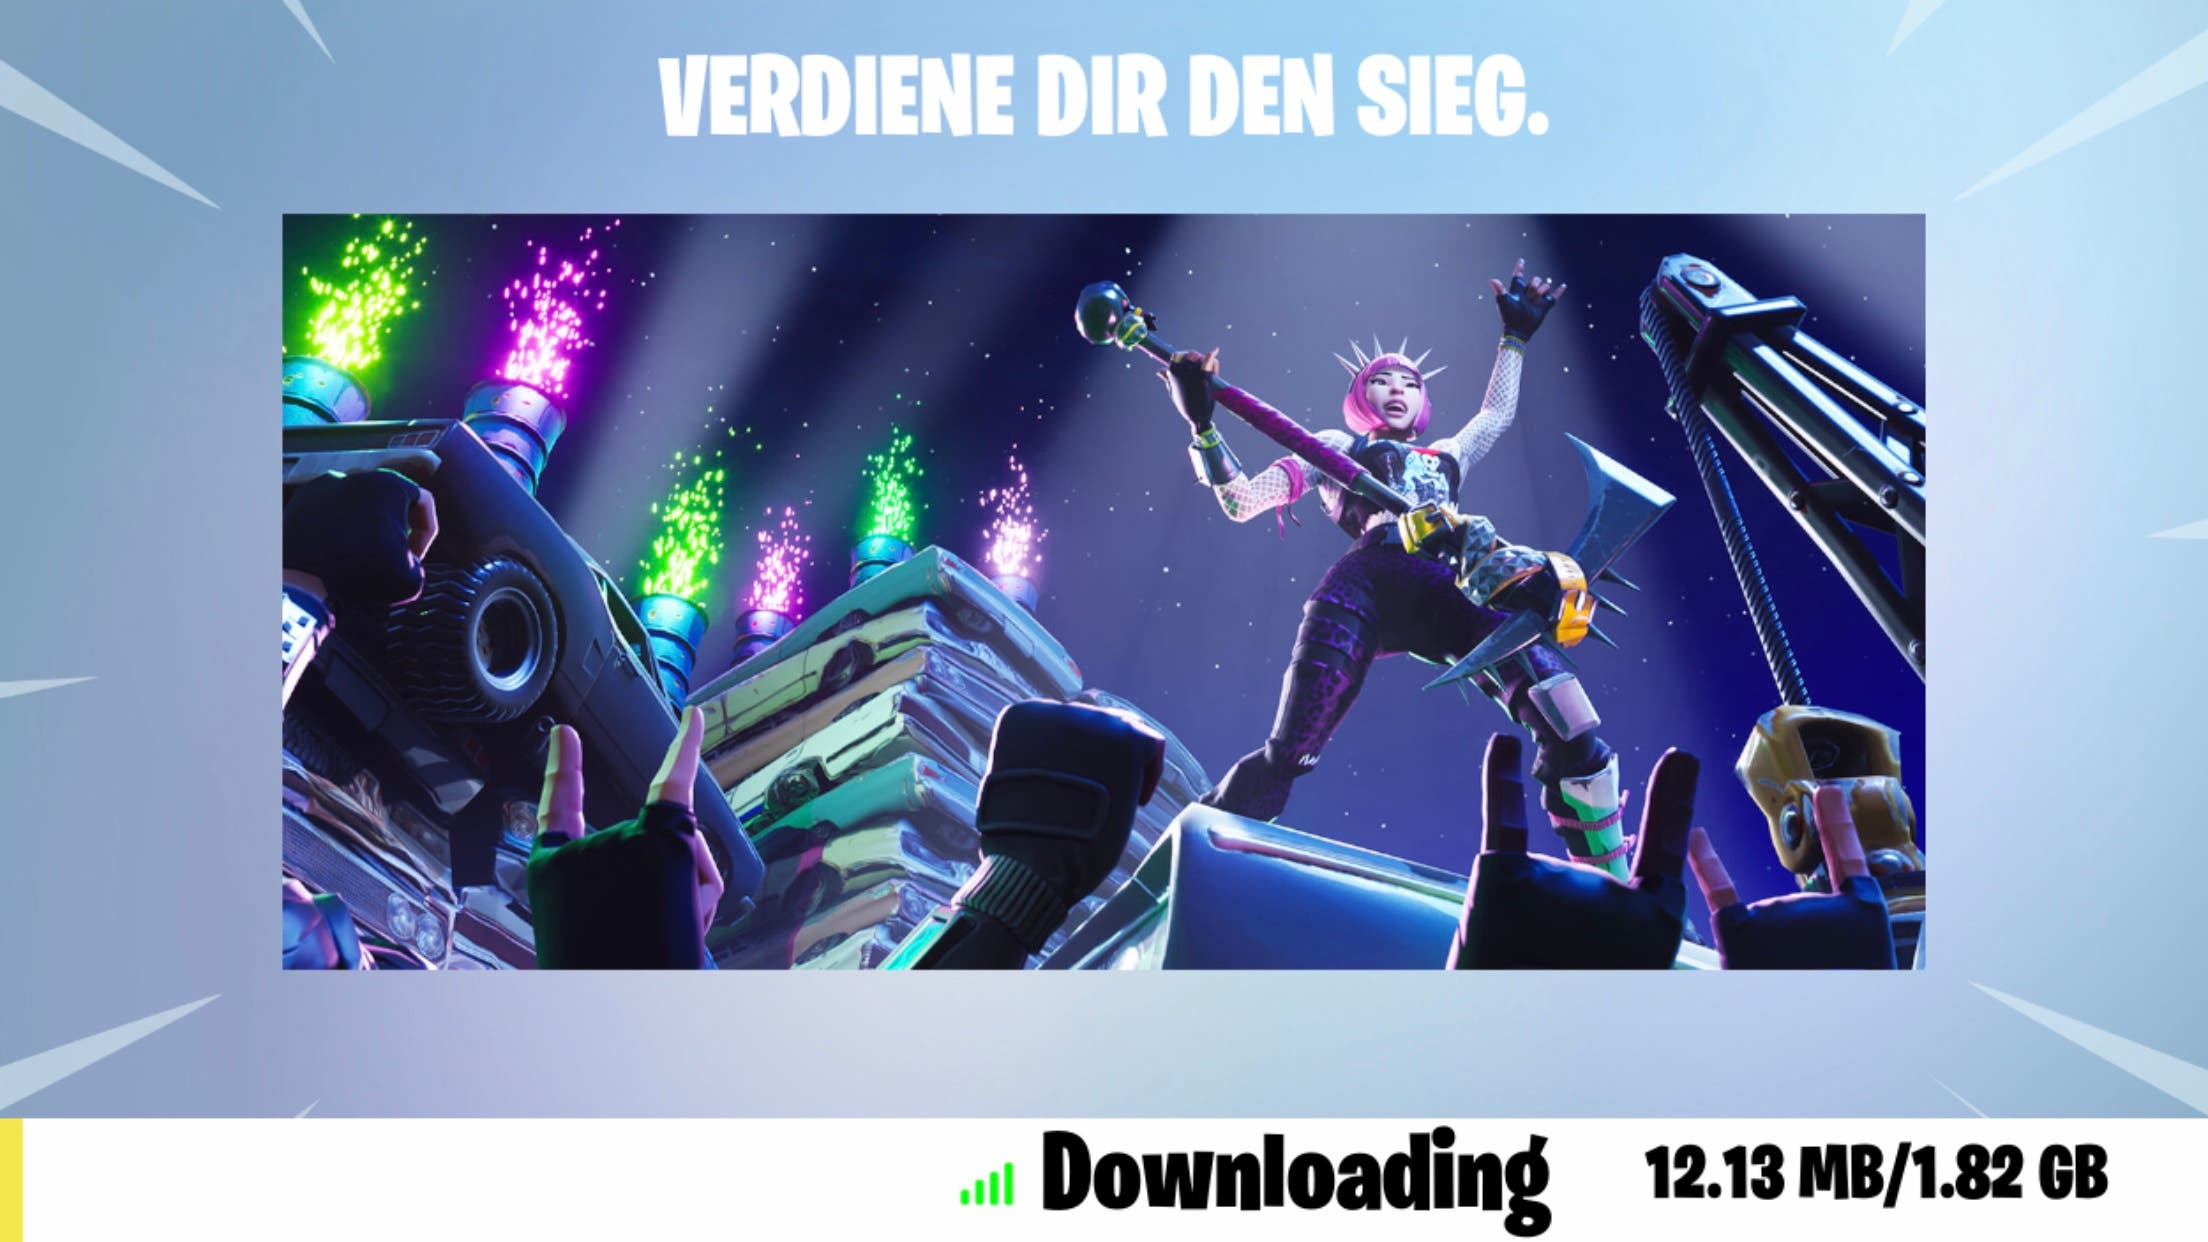 Fortnite 5.0 Update Download auf iPhone 7 Plus